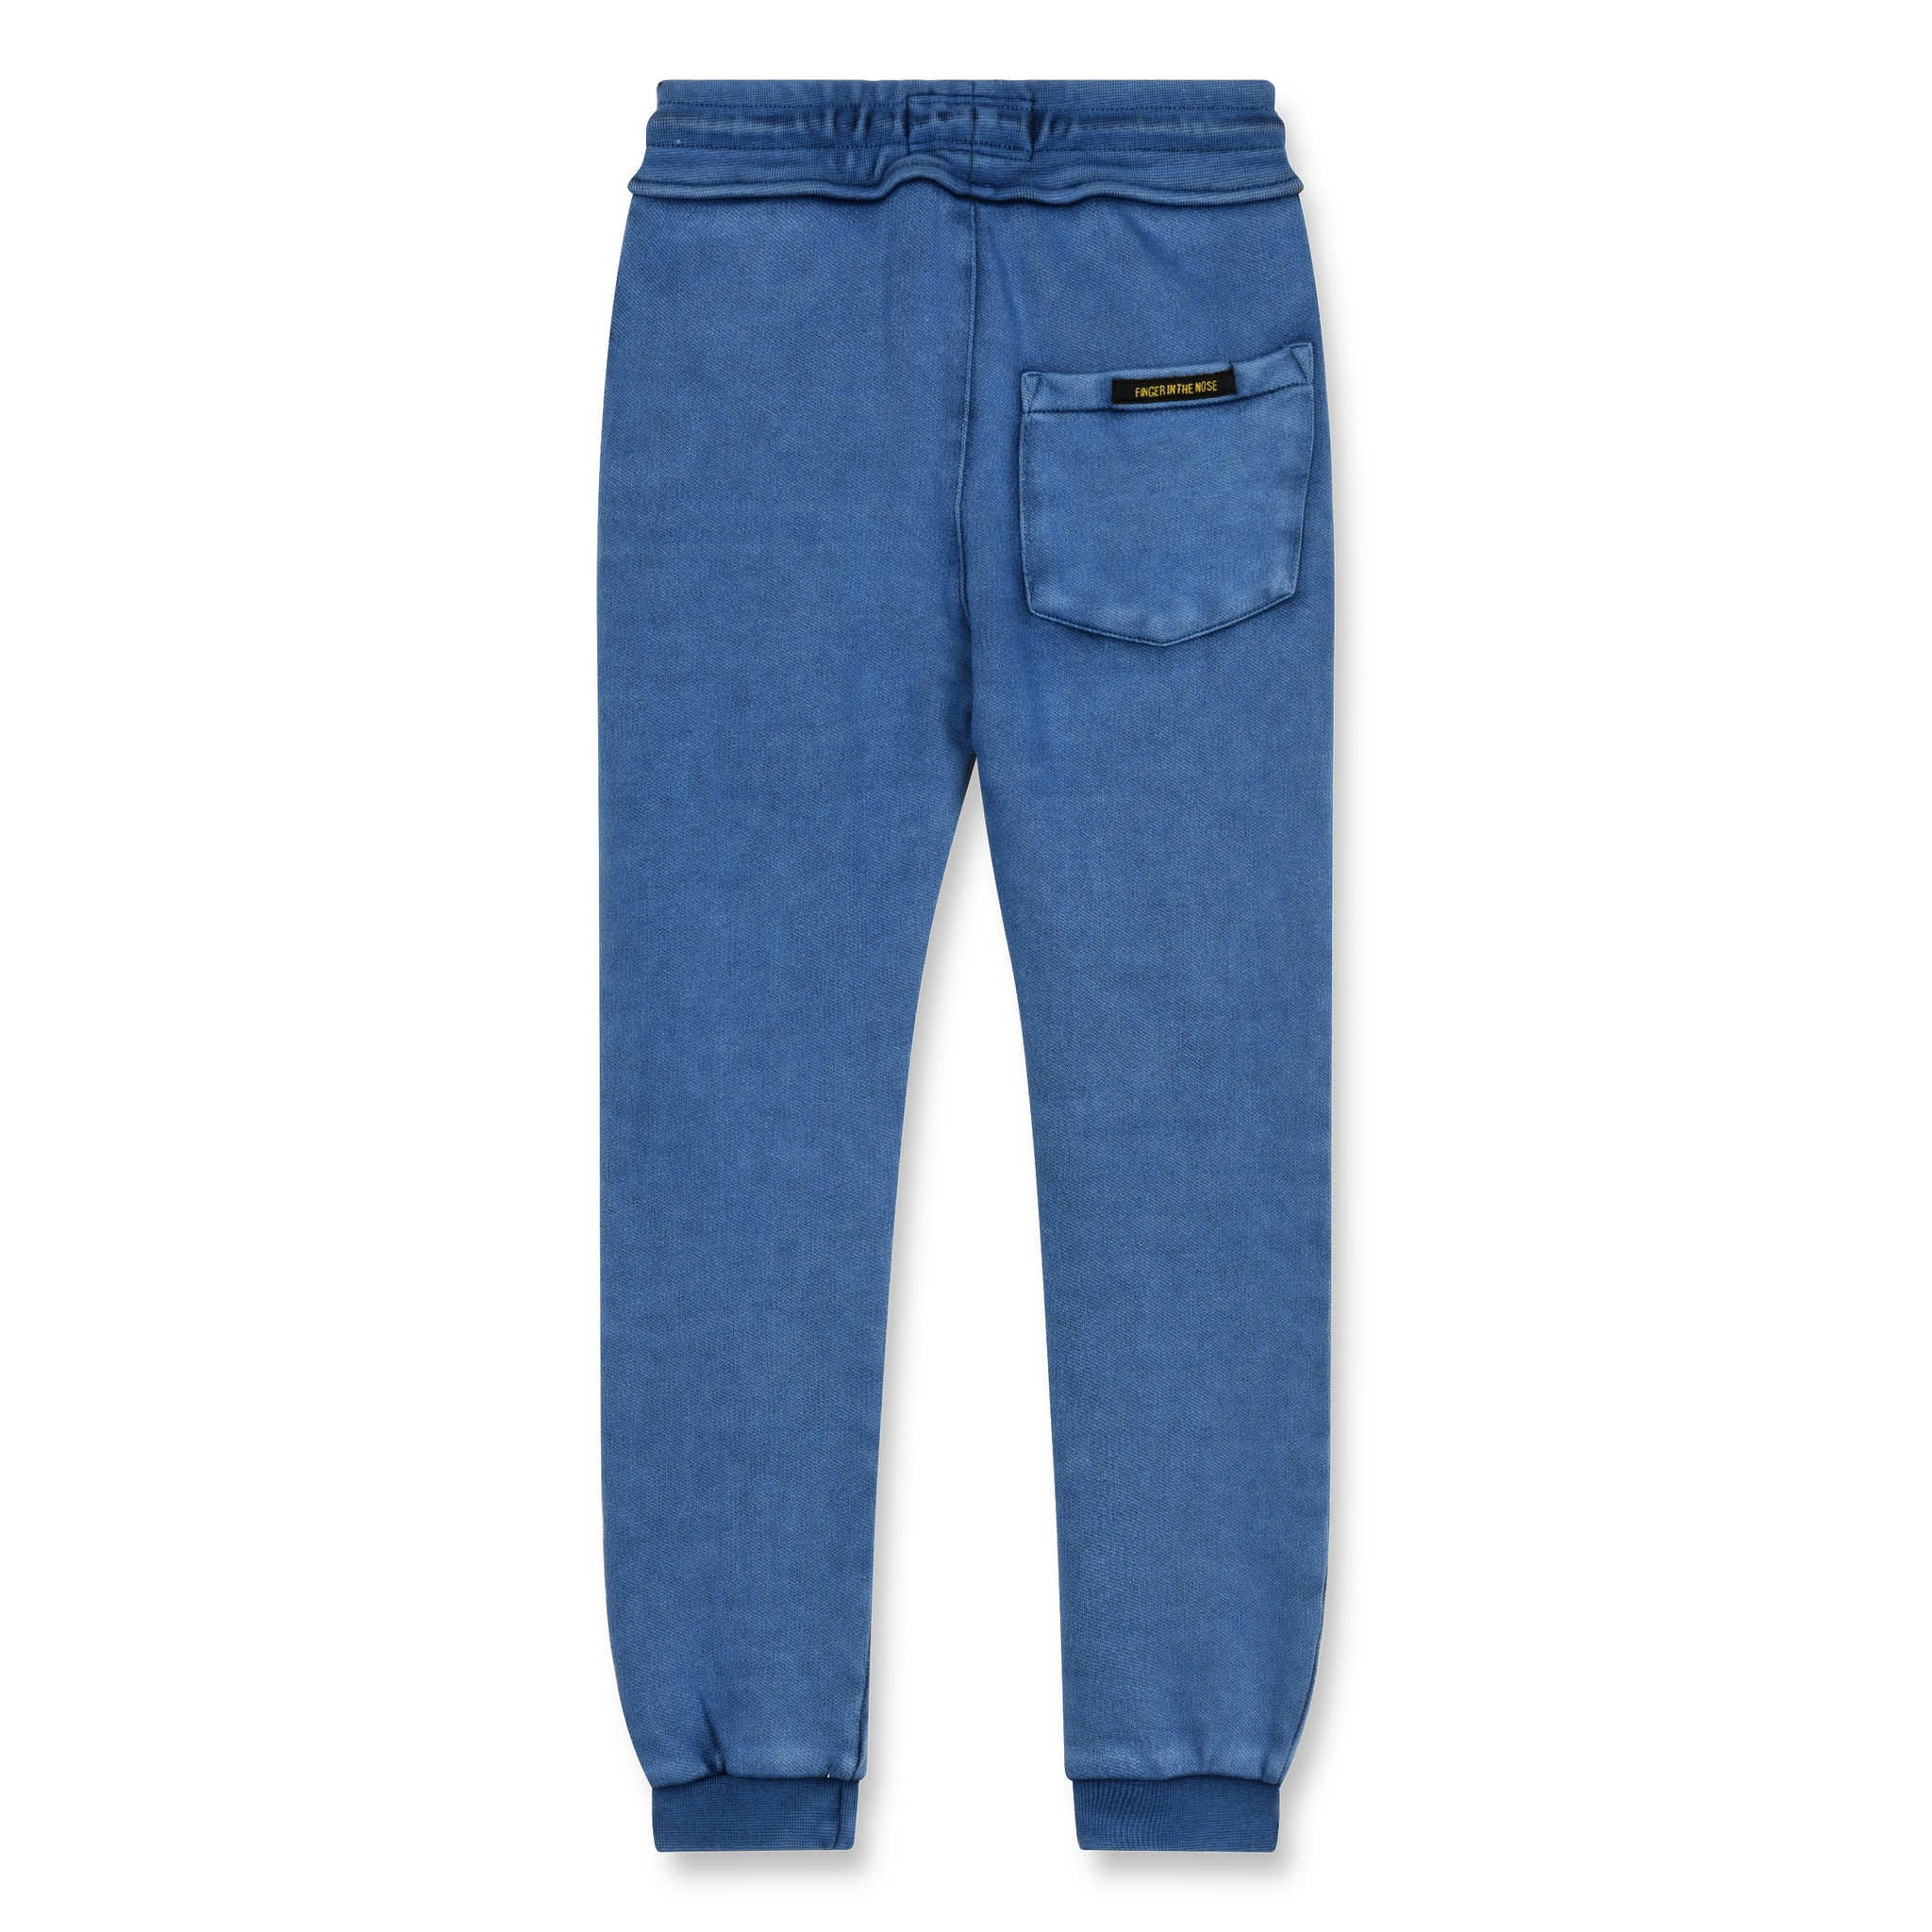 SPRINT Kraft Blue - Jogging Pants 2